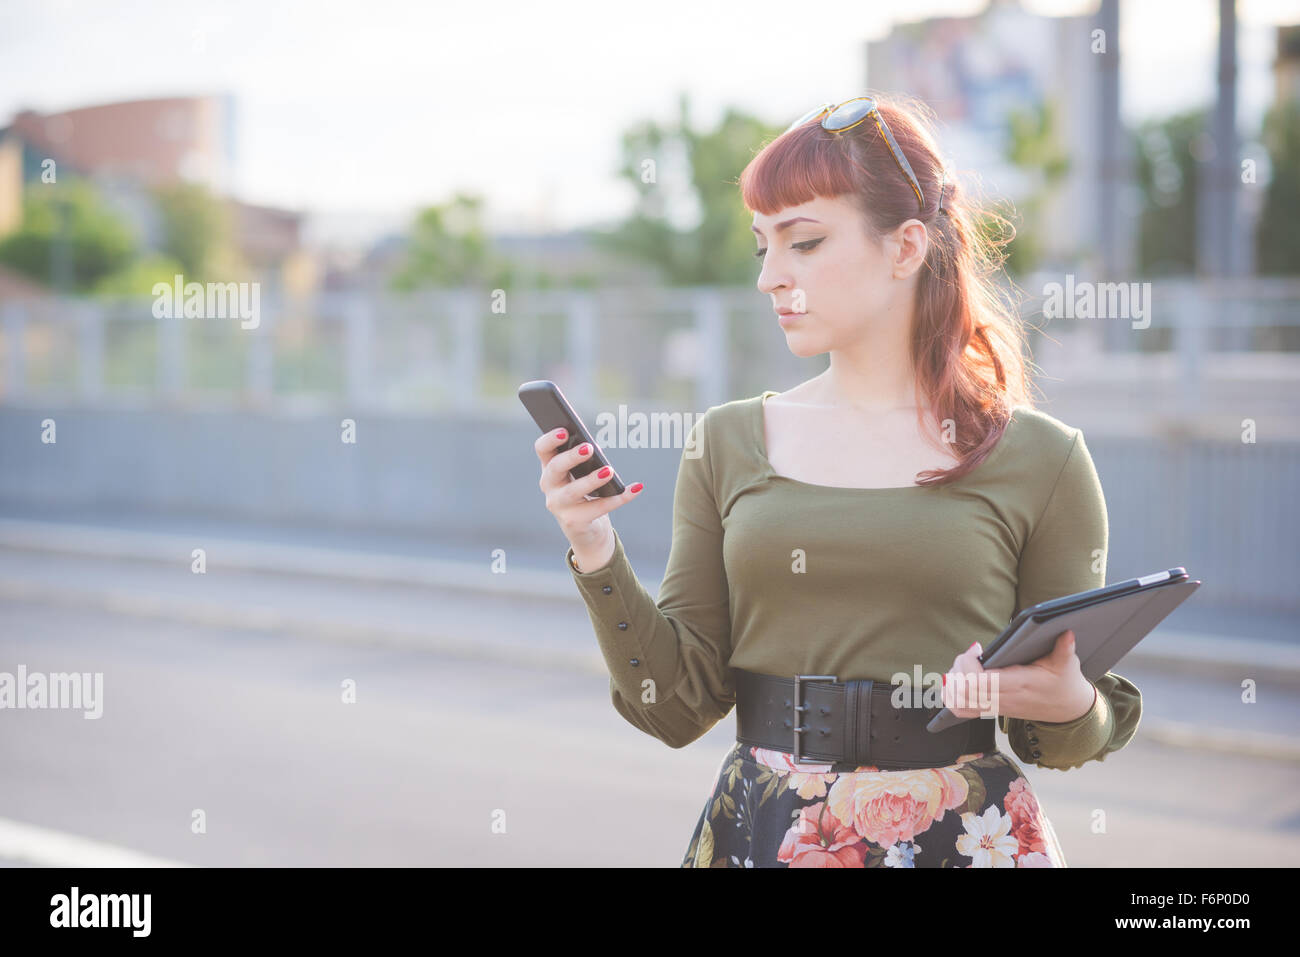 Half length of young handsome caucasian redhead woman using a smartphone, looking downward and tapping the screen Stock Photo